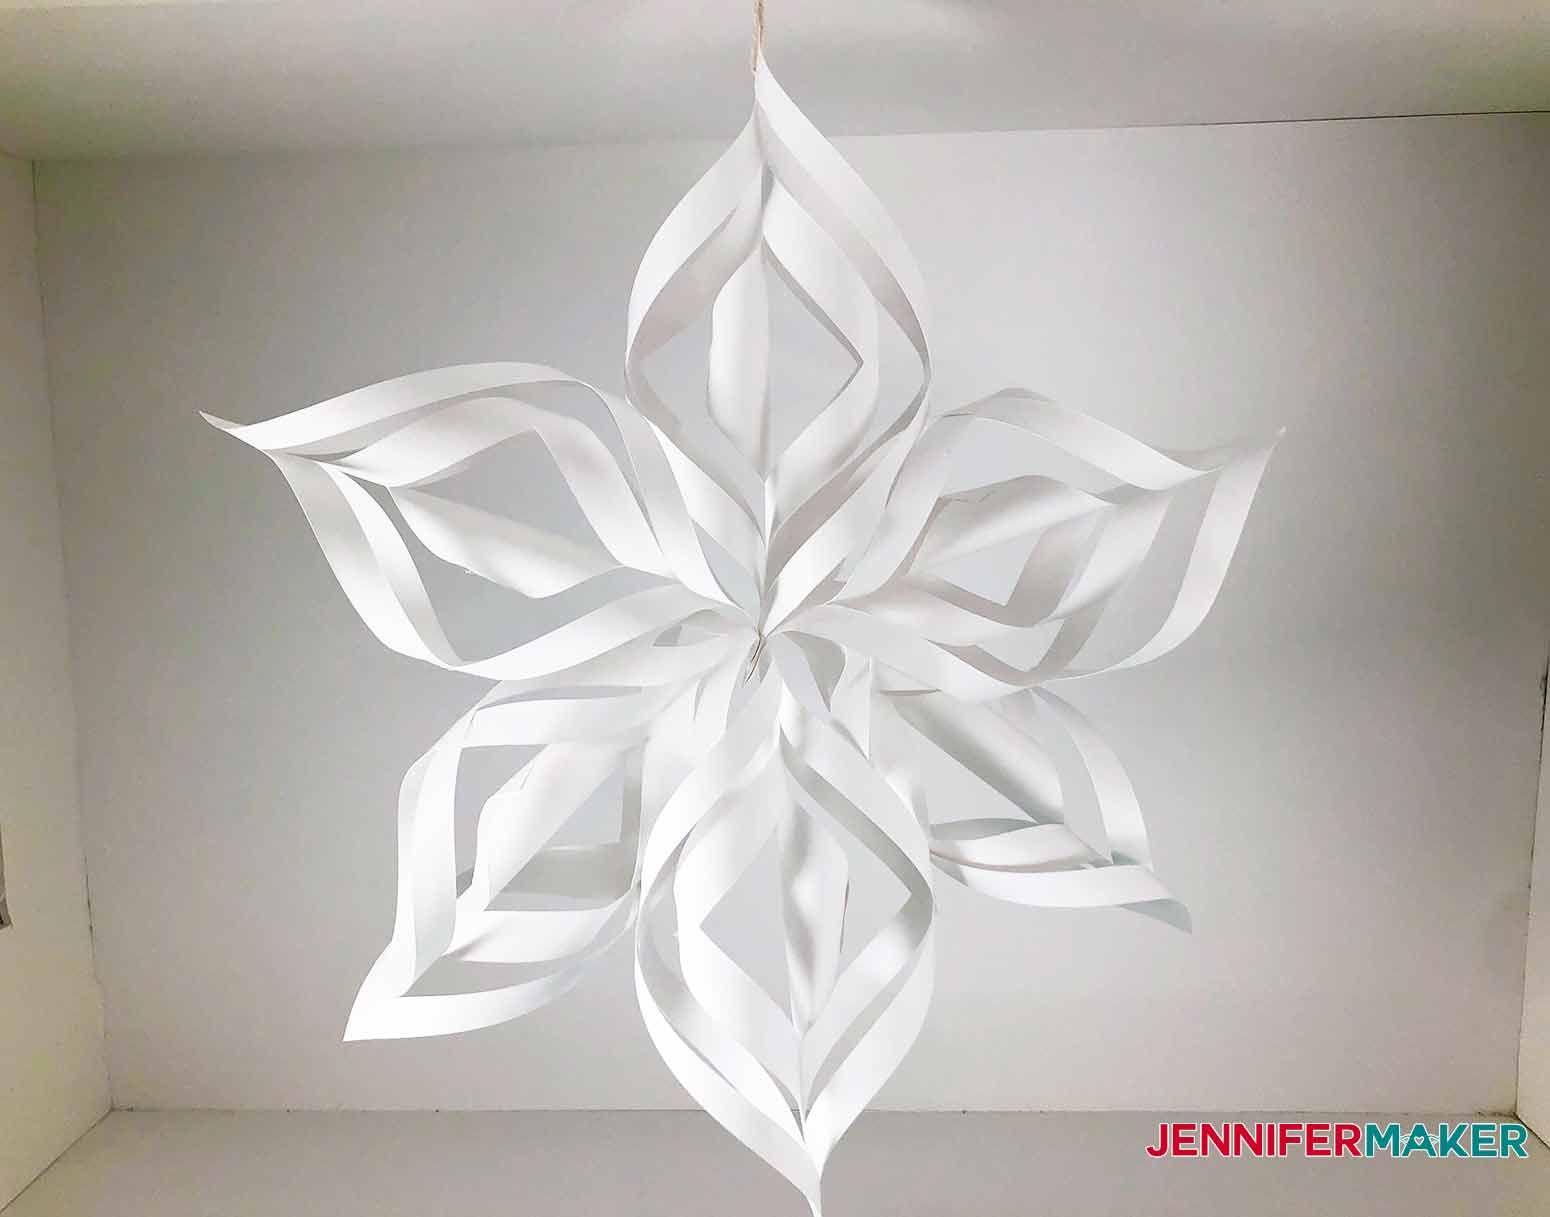 finished snowflake for my 3D Snowflake